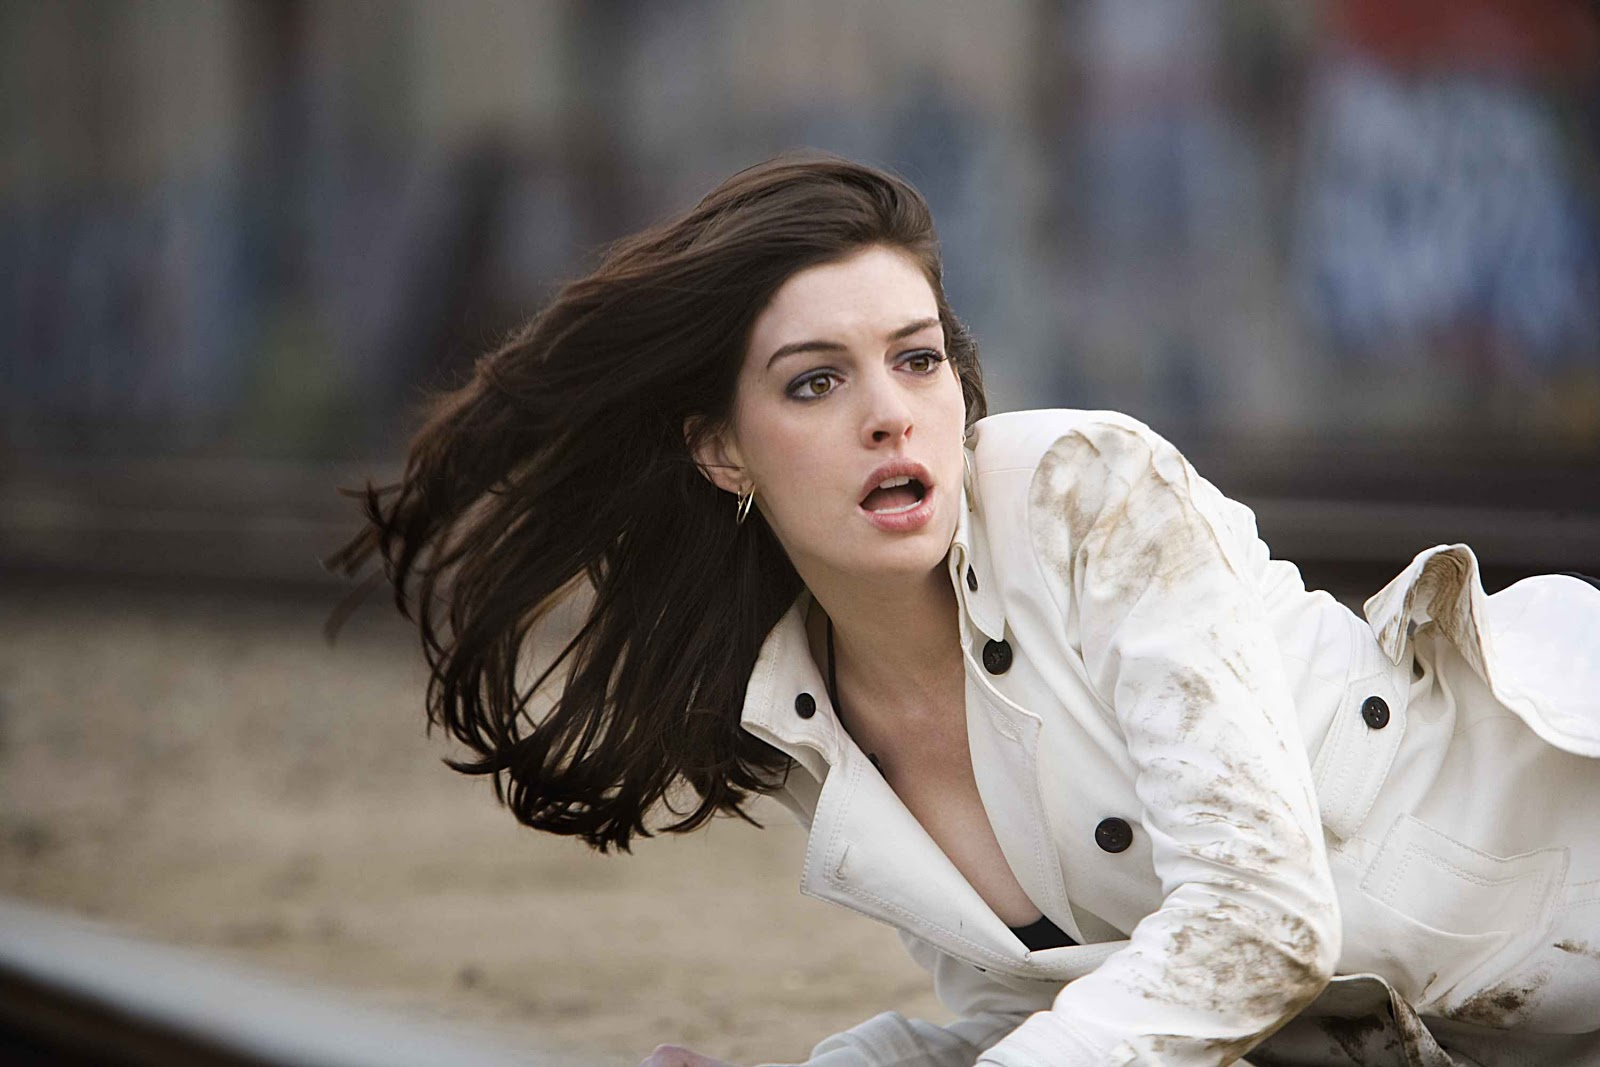 All Wallpapers Anne Hathaway Hd Wallpapers 2013